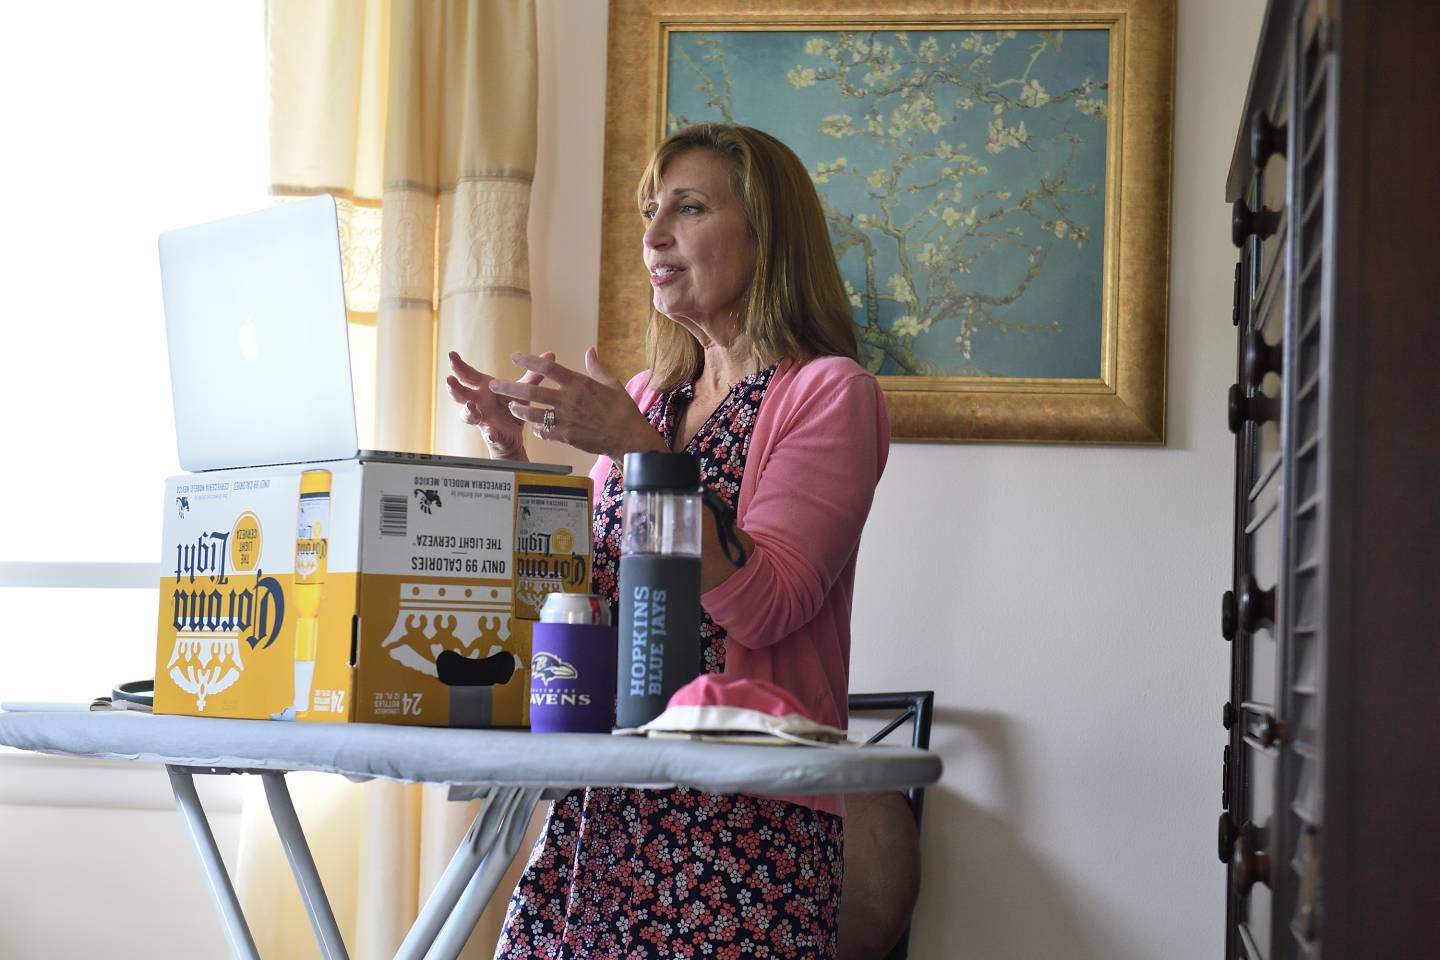 A woman teaches with her laptop propped on a beer box on an ironing board